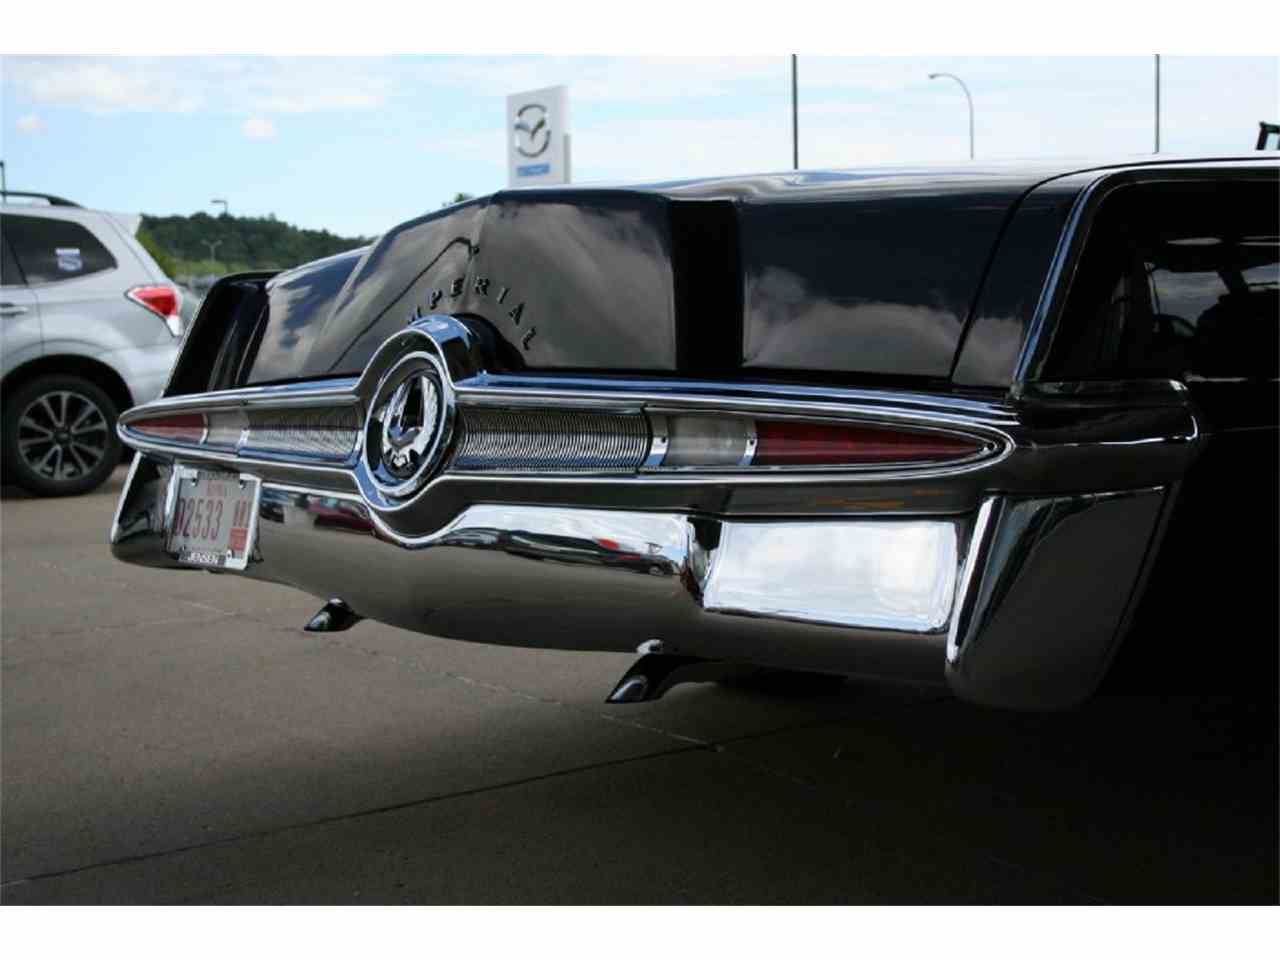 Large Picture of '65 Chrysler Imperial - $54,300.00 - JEGD